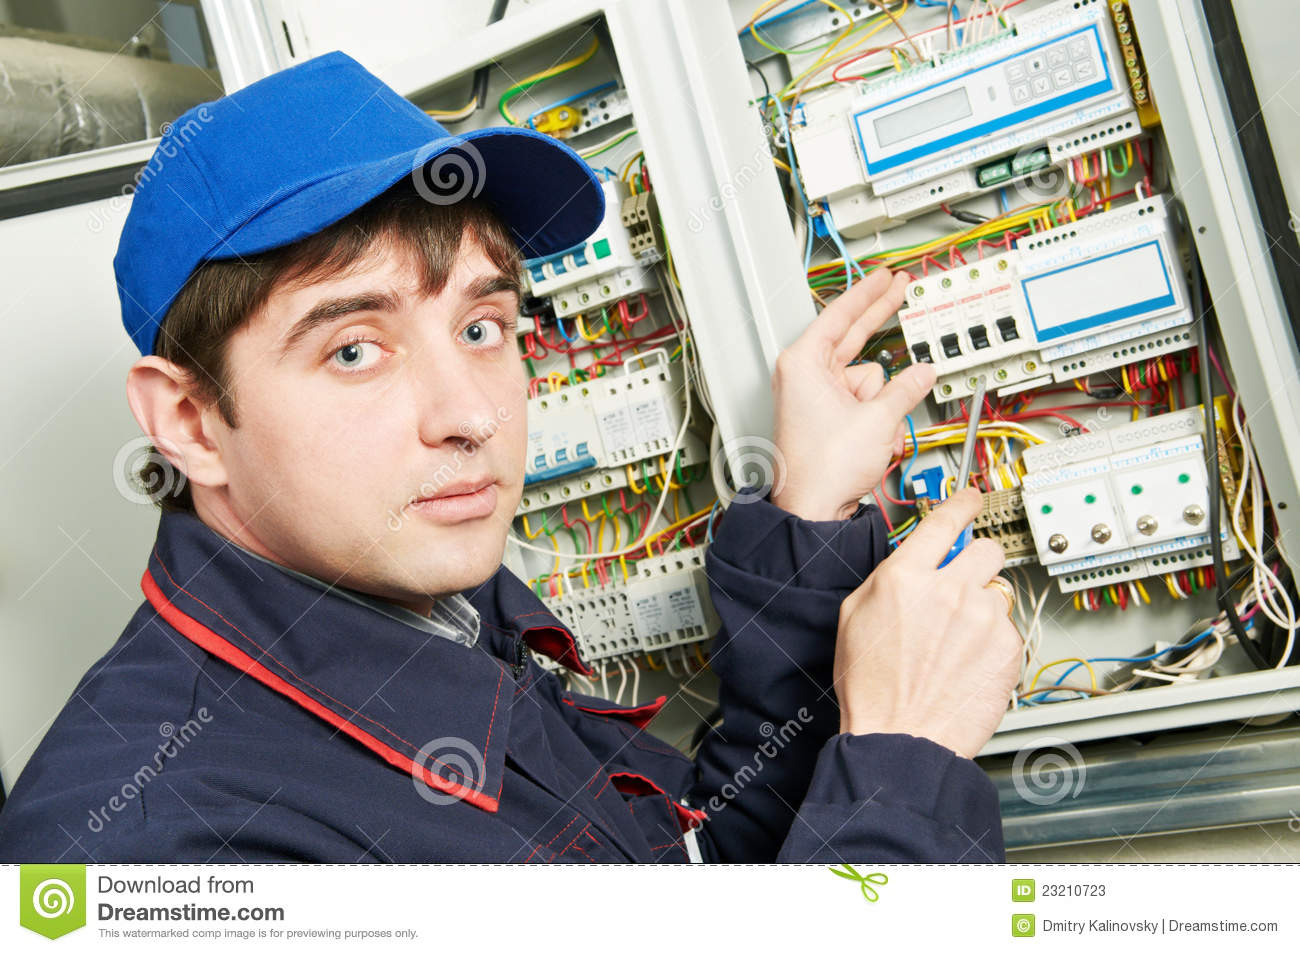 traveling industrial electrician jobs